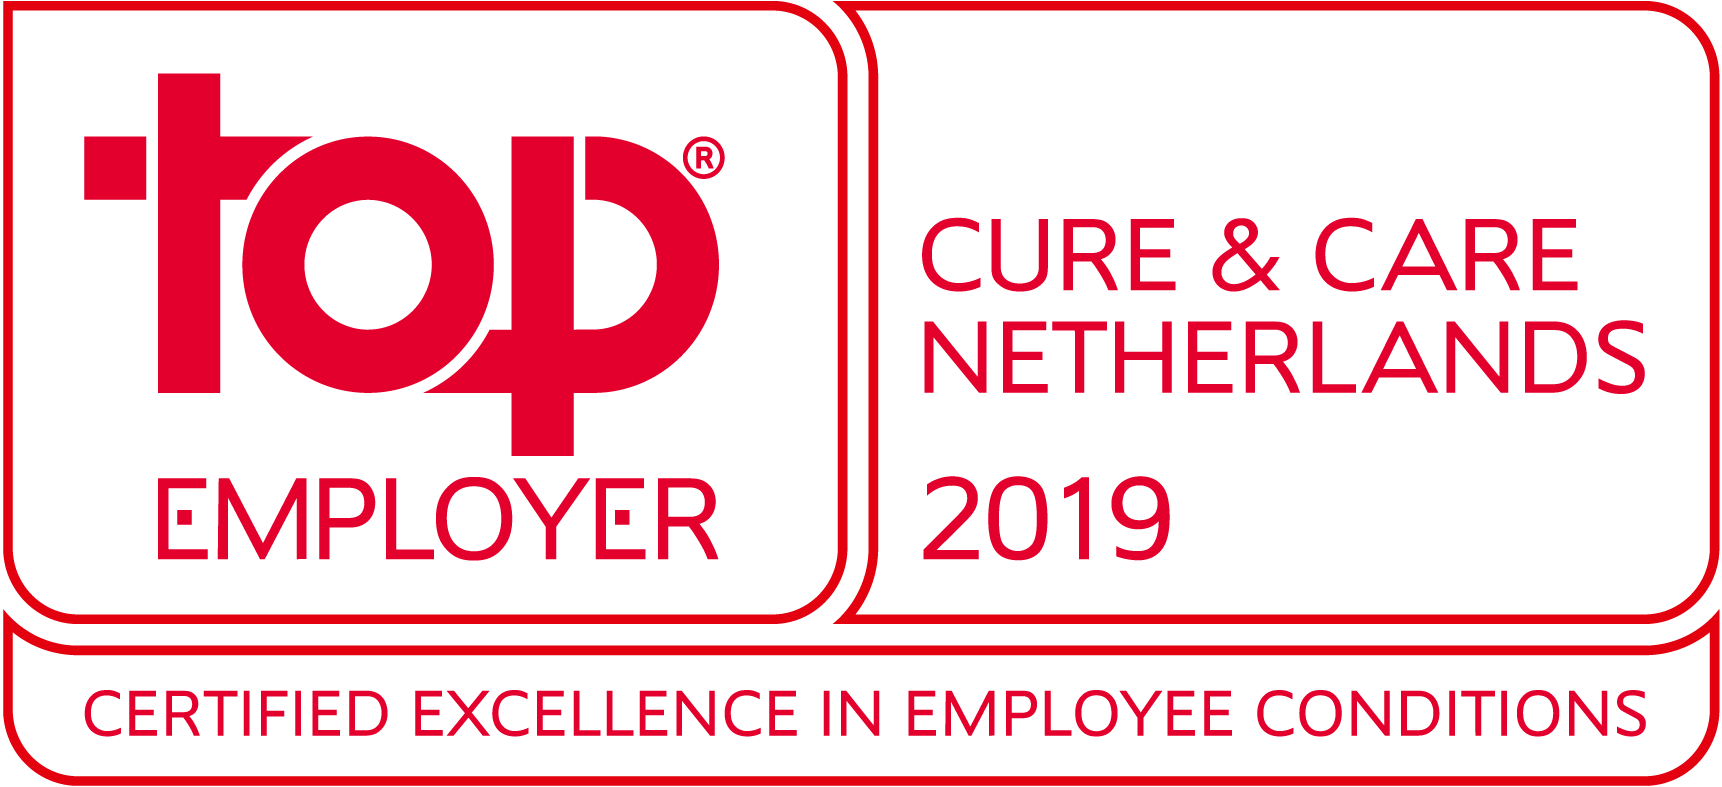 Top Employer Cure and Care 2019